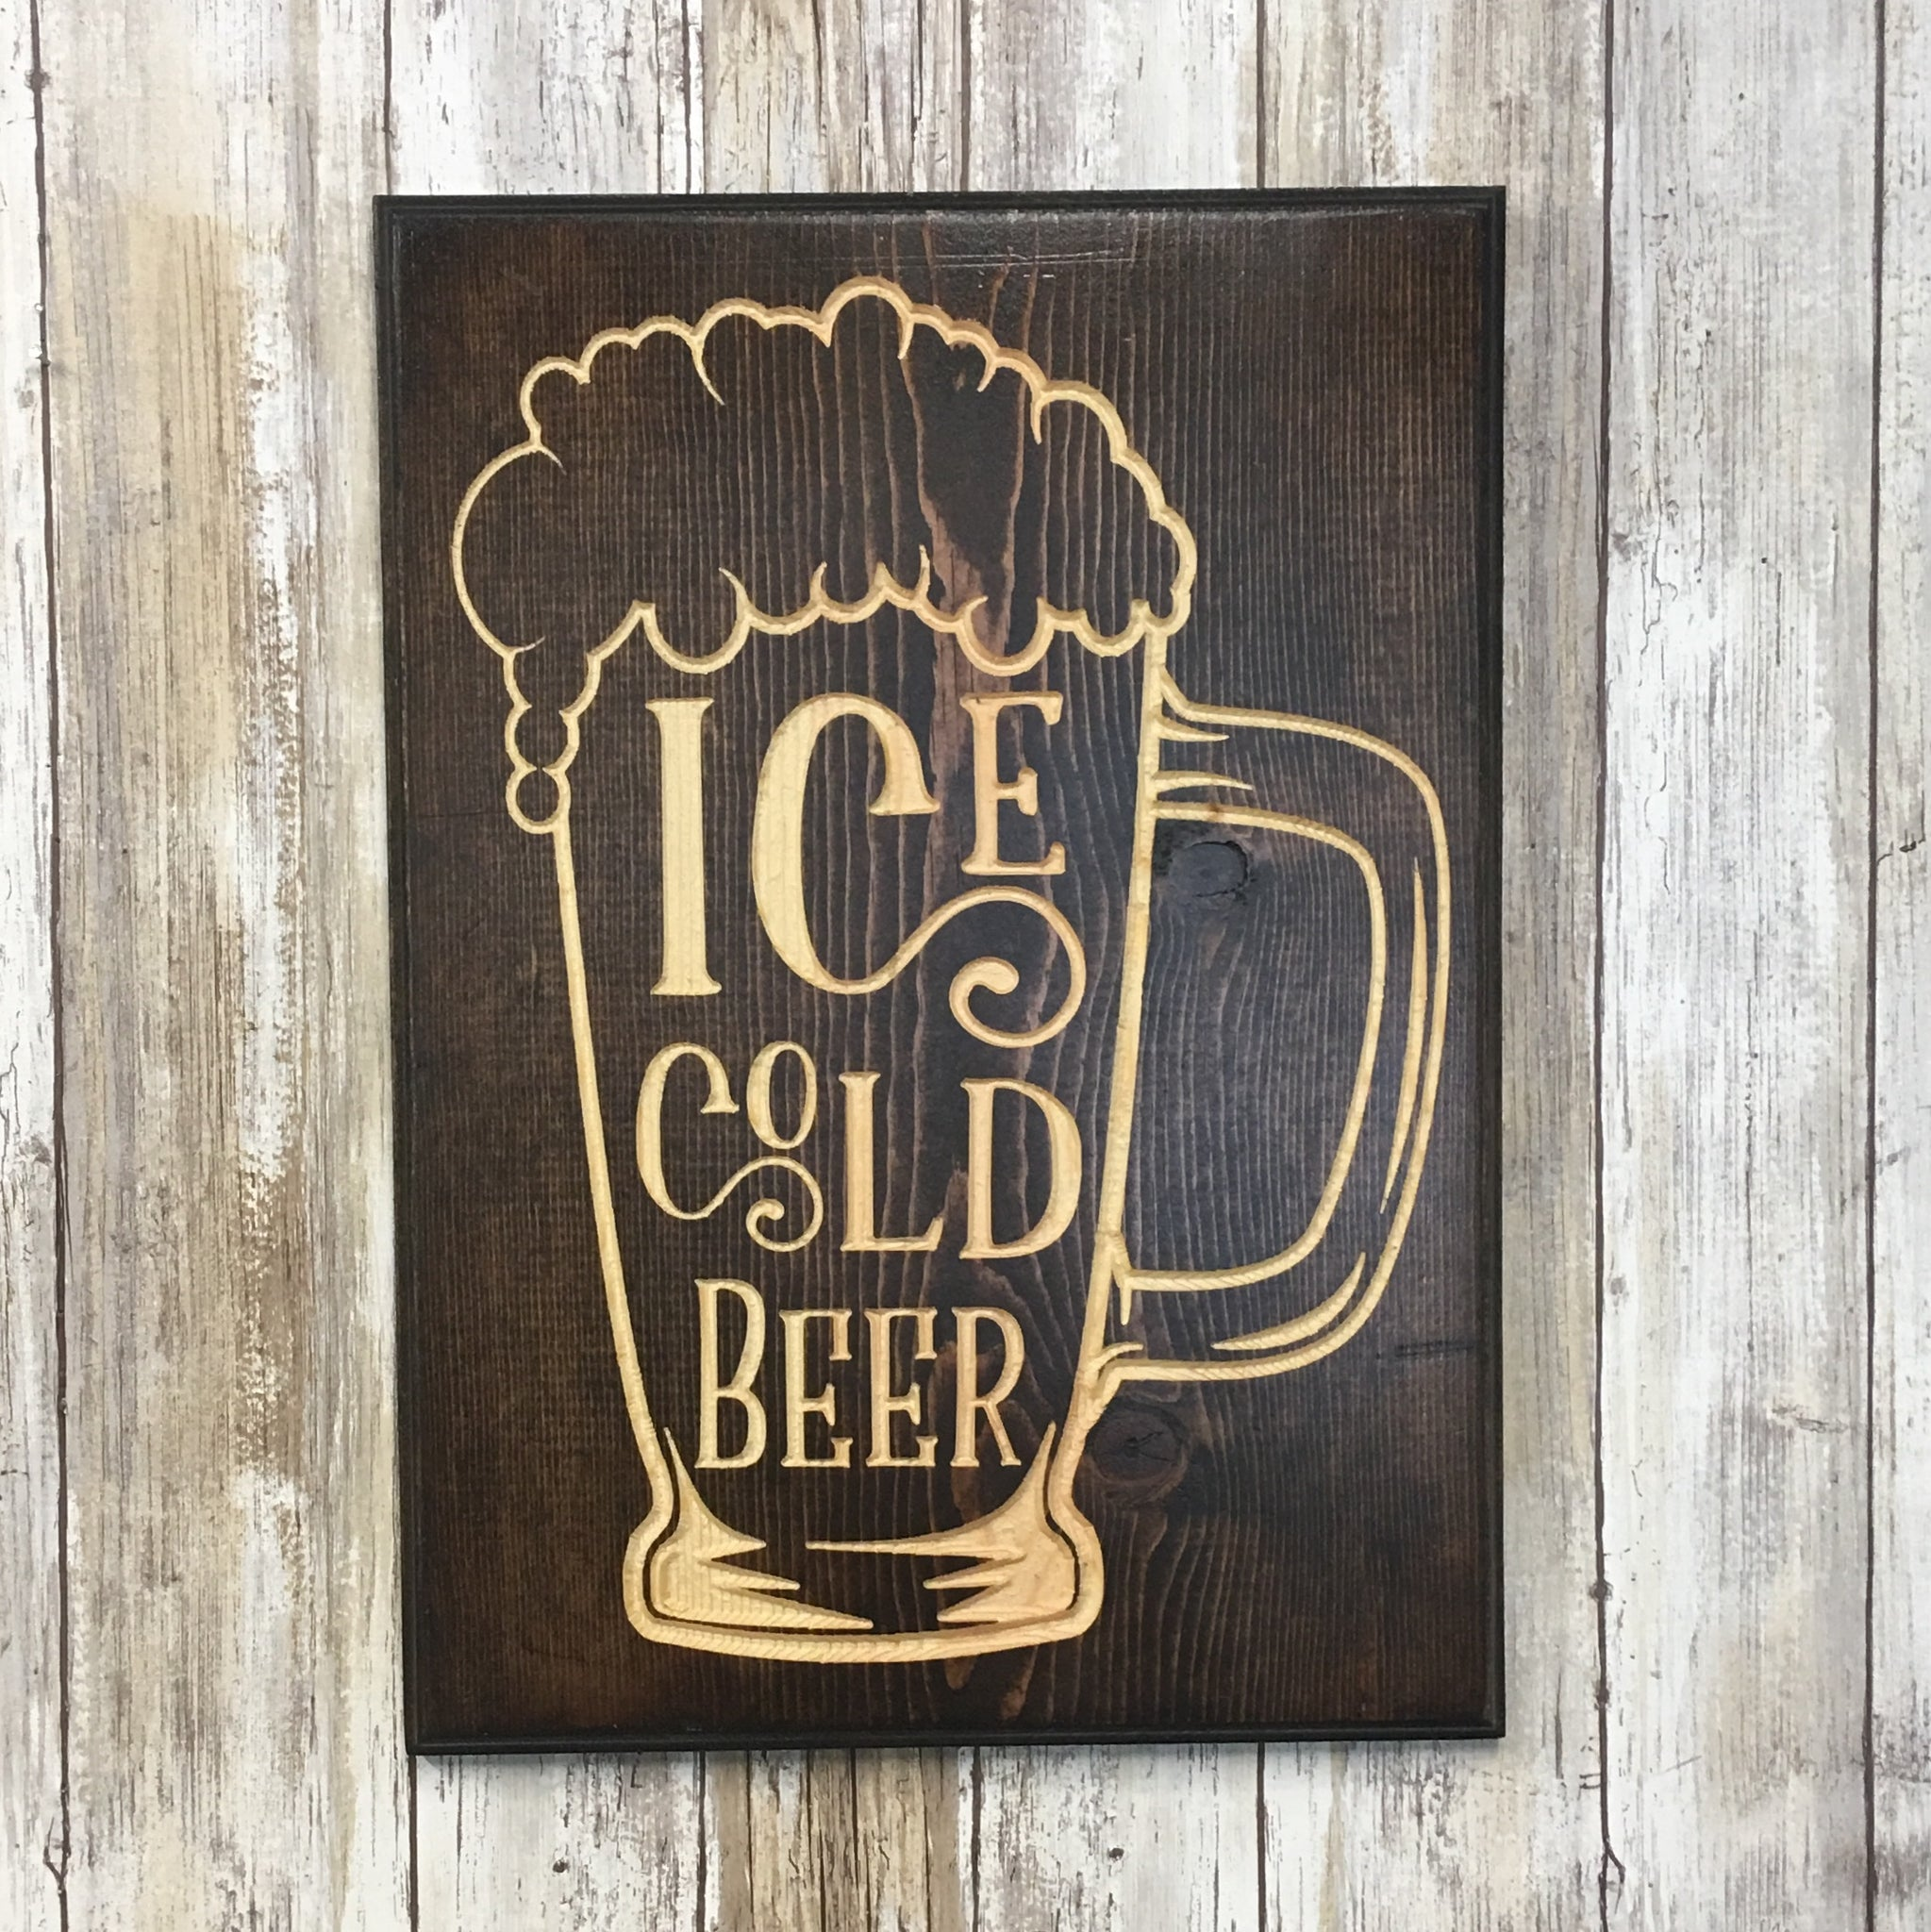 Ice Cold Beer Mug Sign - Carved Pine Wood